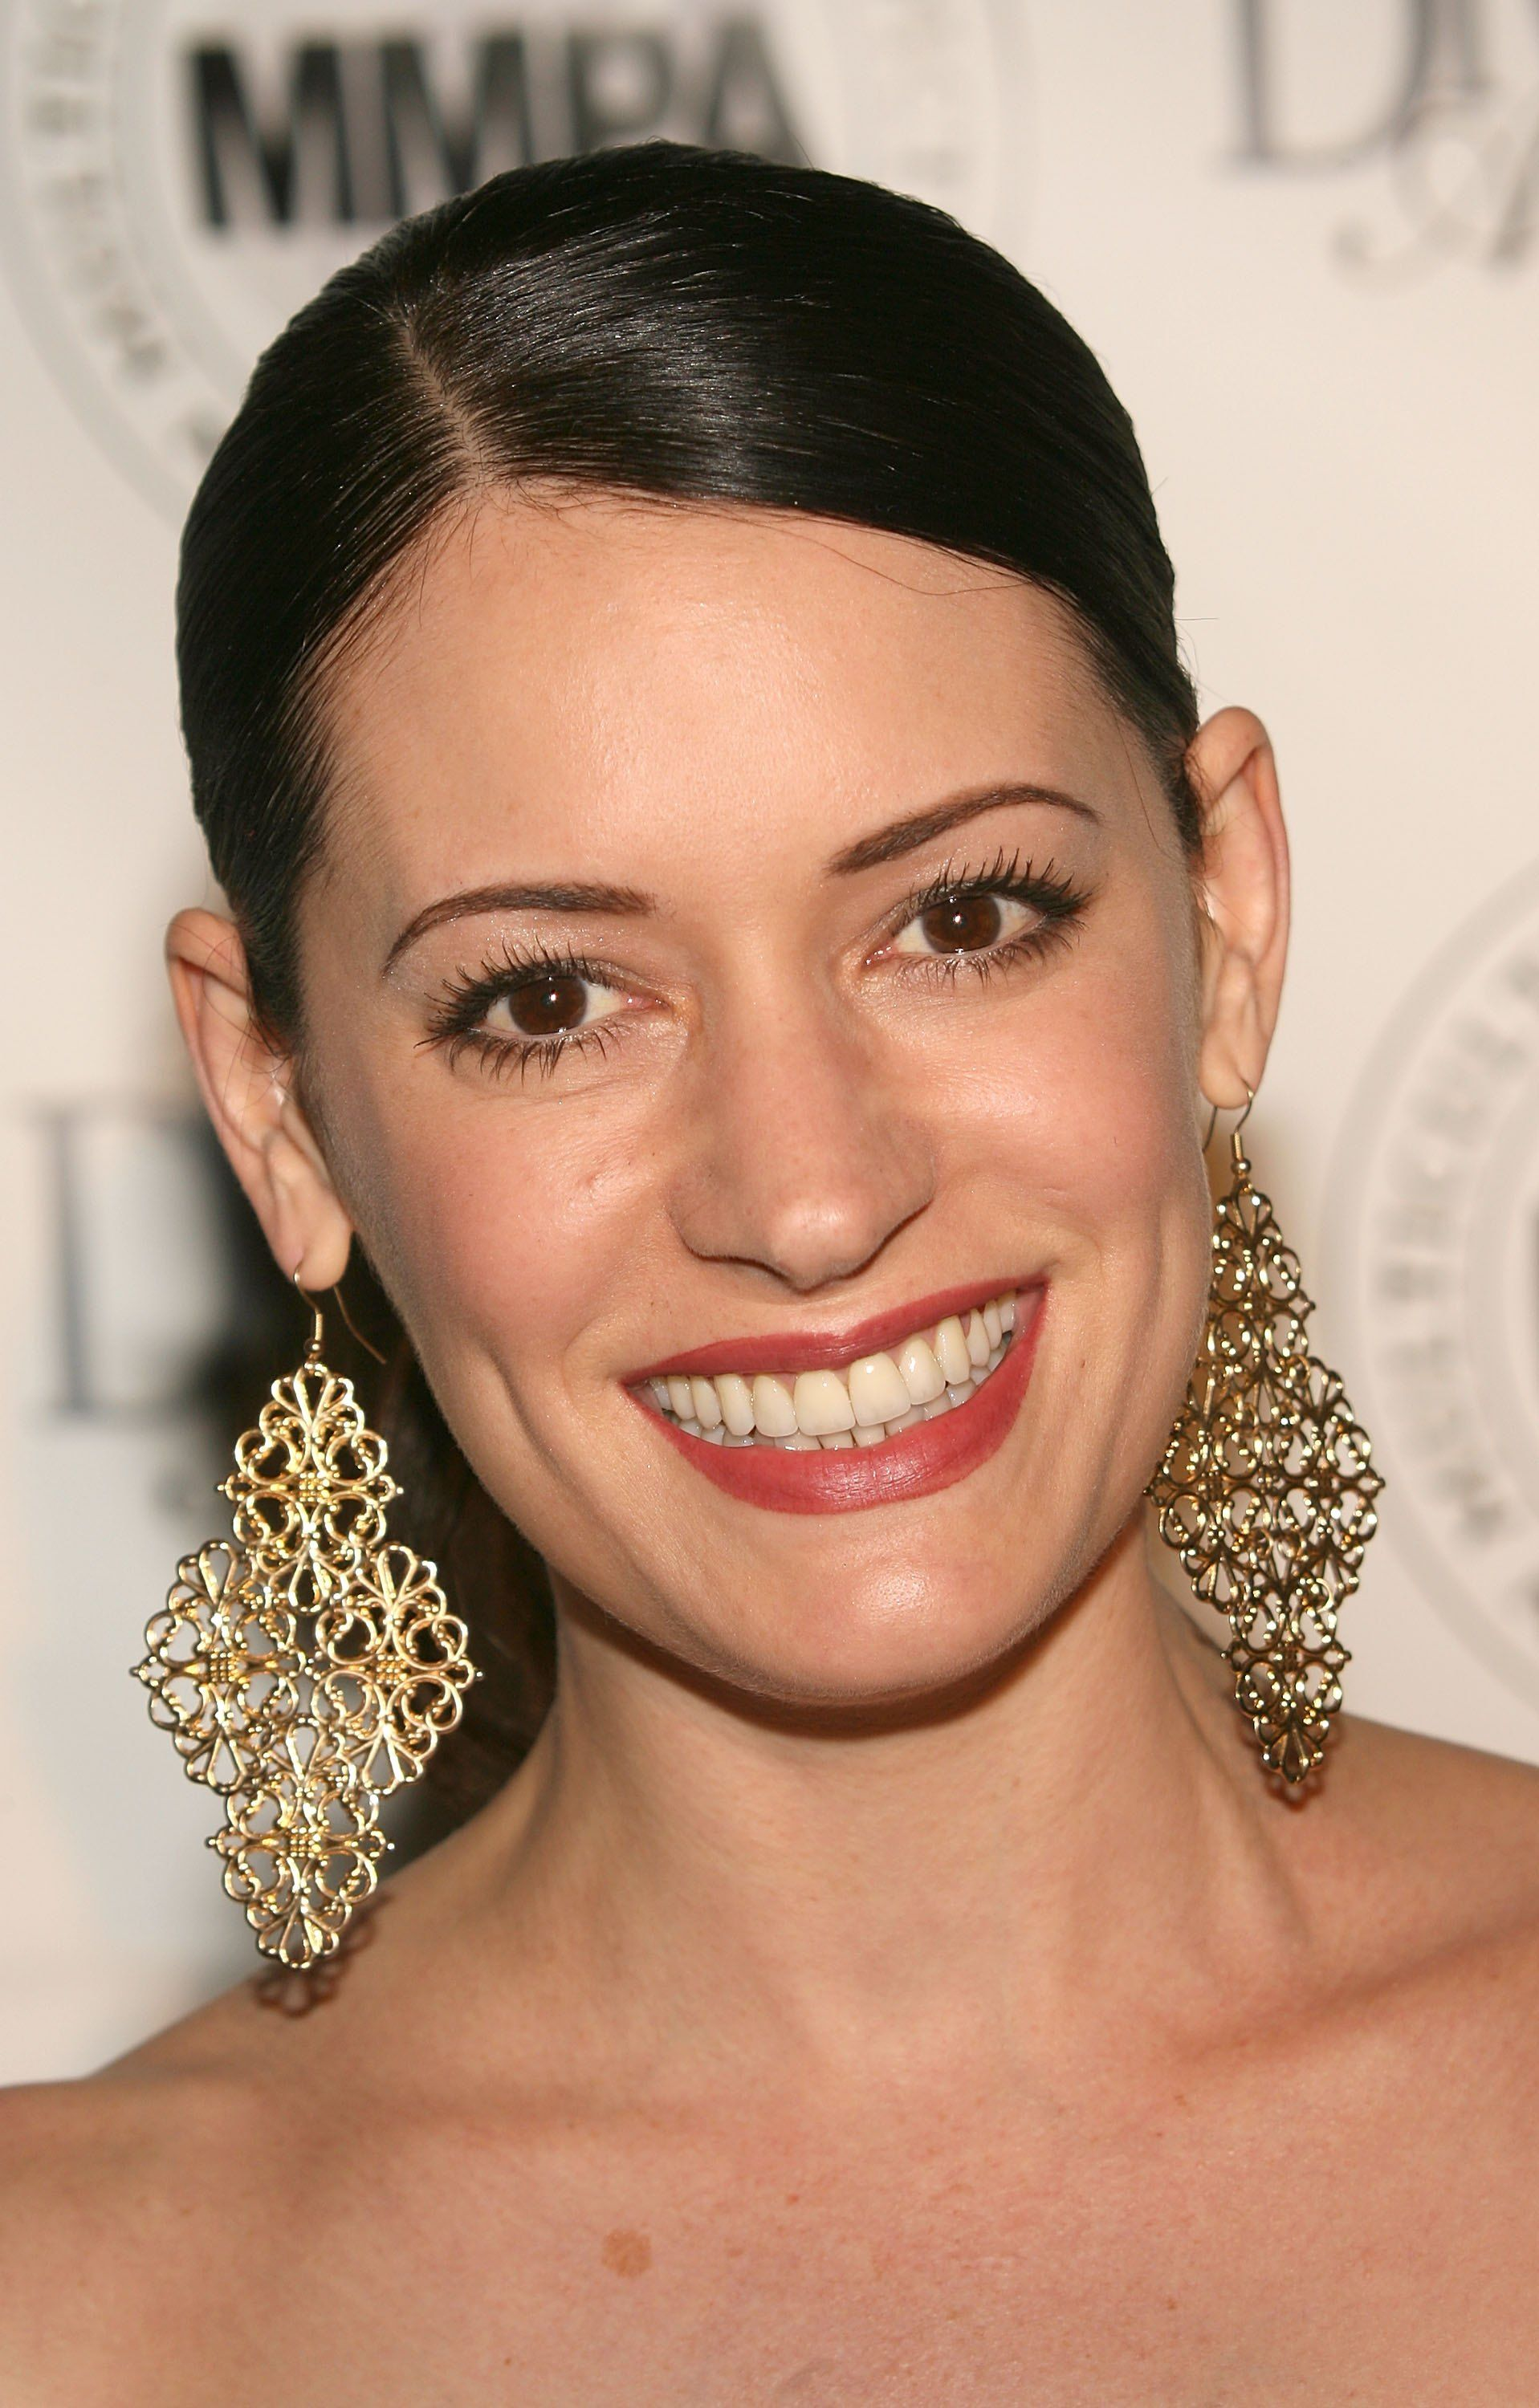 pagetbrewster microsoft store